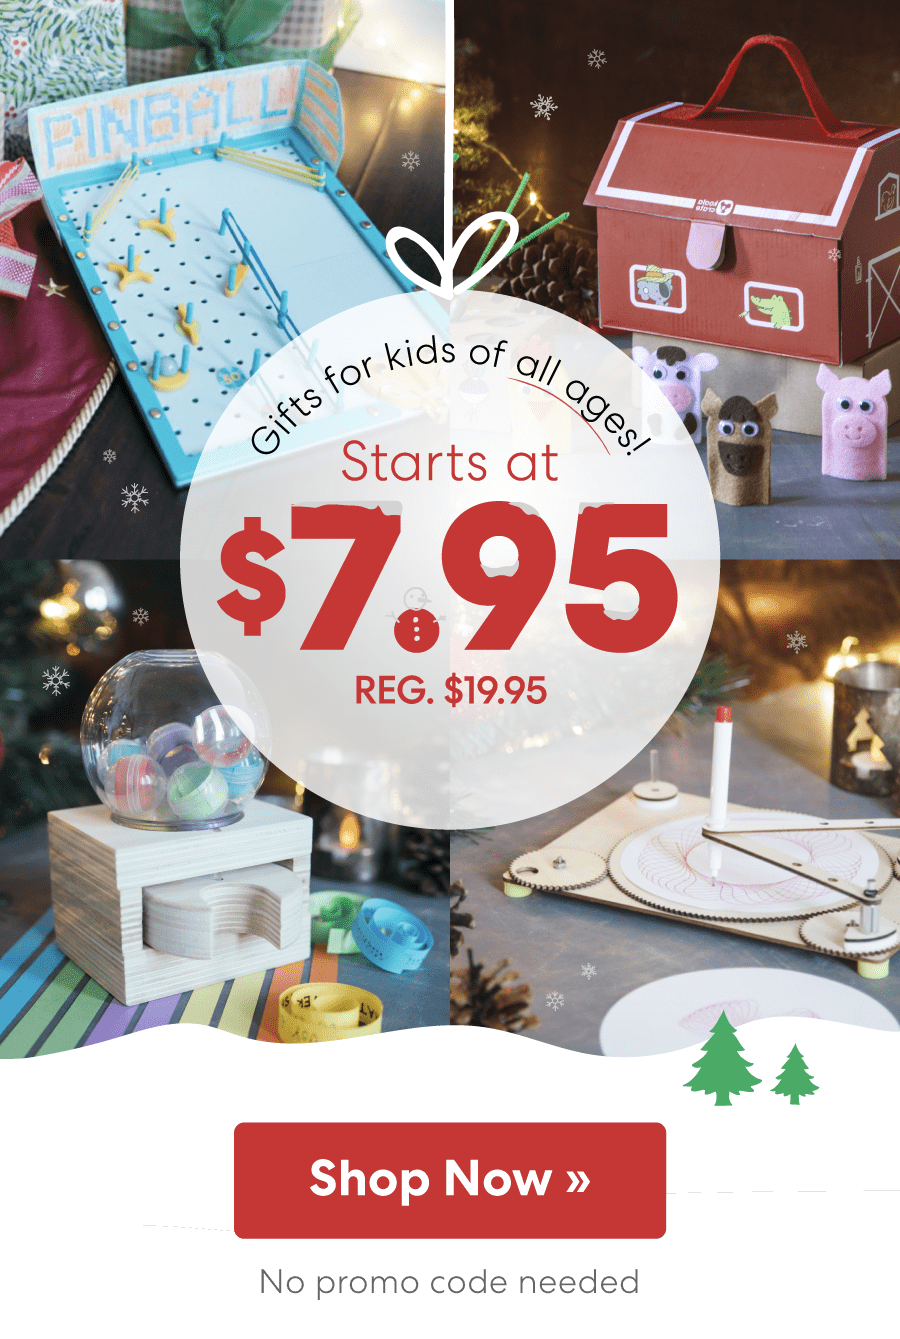 Last Chance to Get KiwiCo Holiday Delivery + First Box $7.95 Coupon!